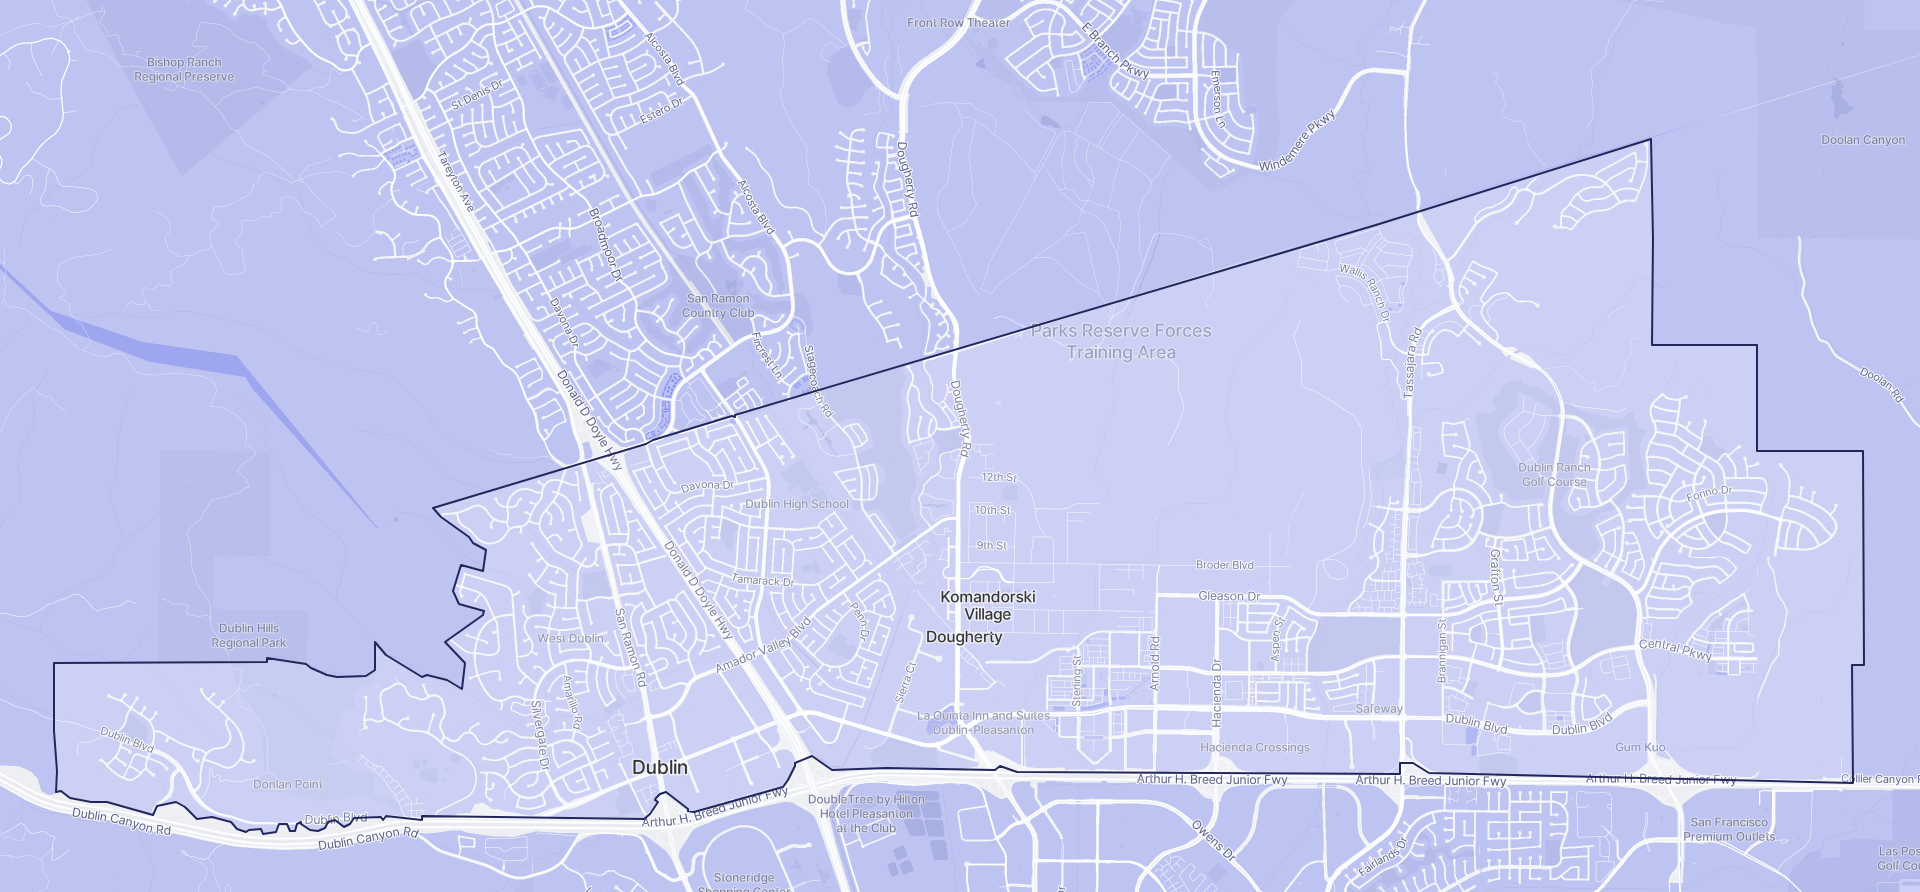 Image of Dublin boundaries on a map.